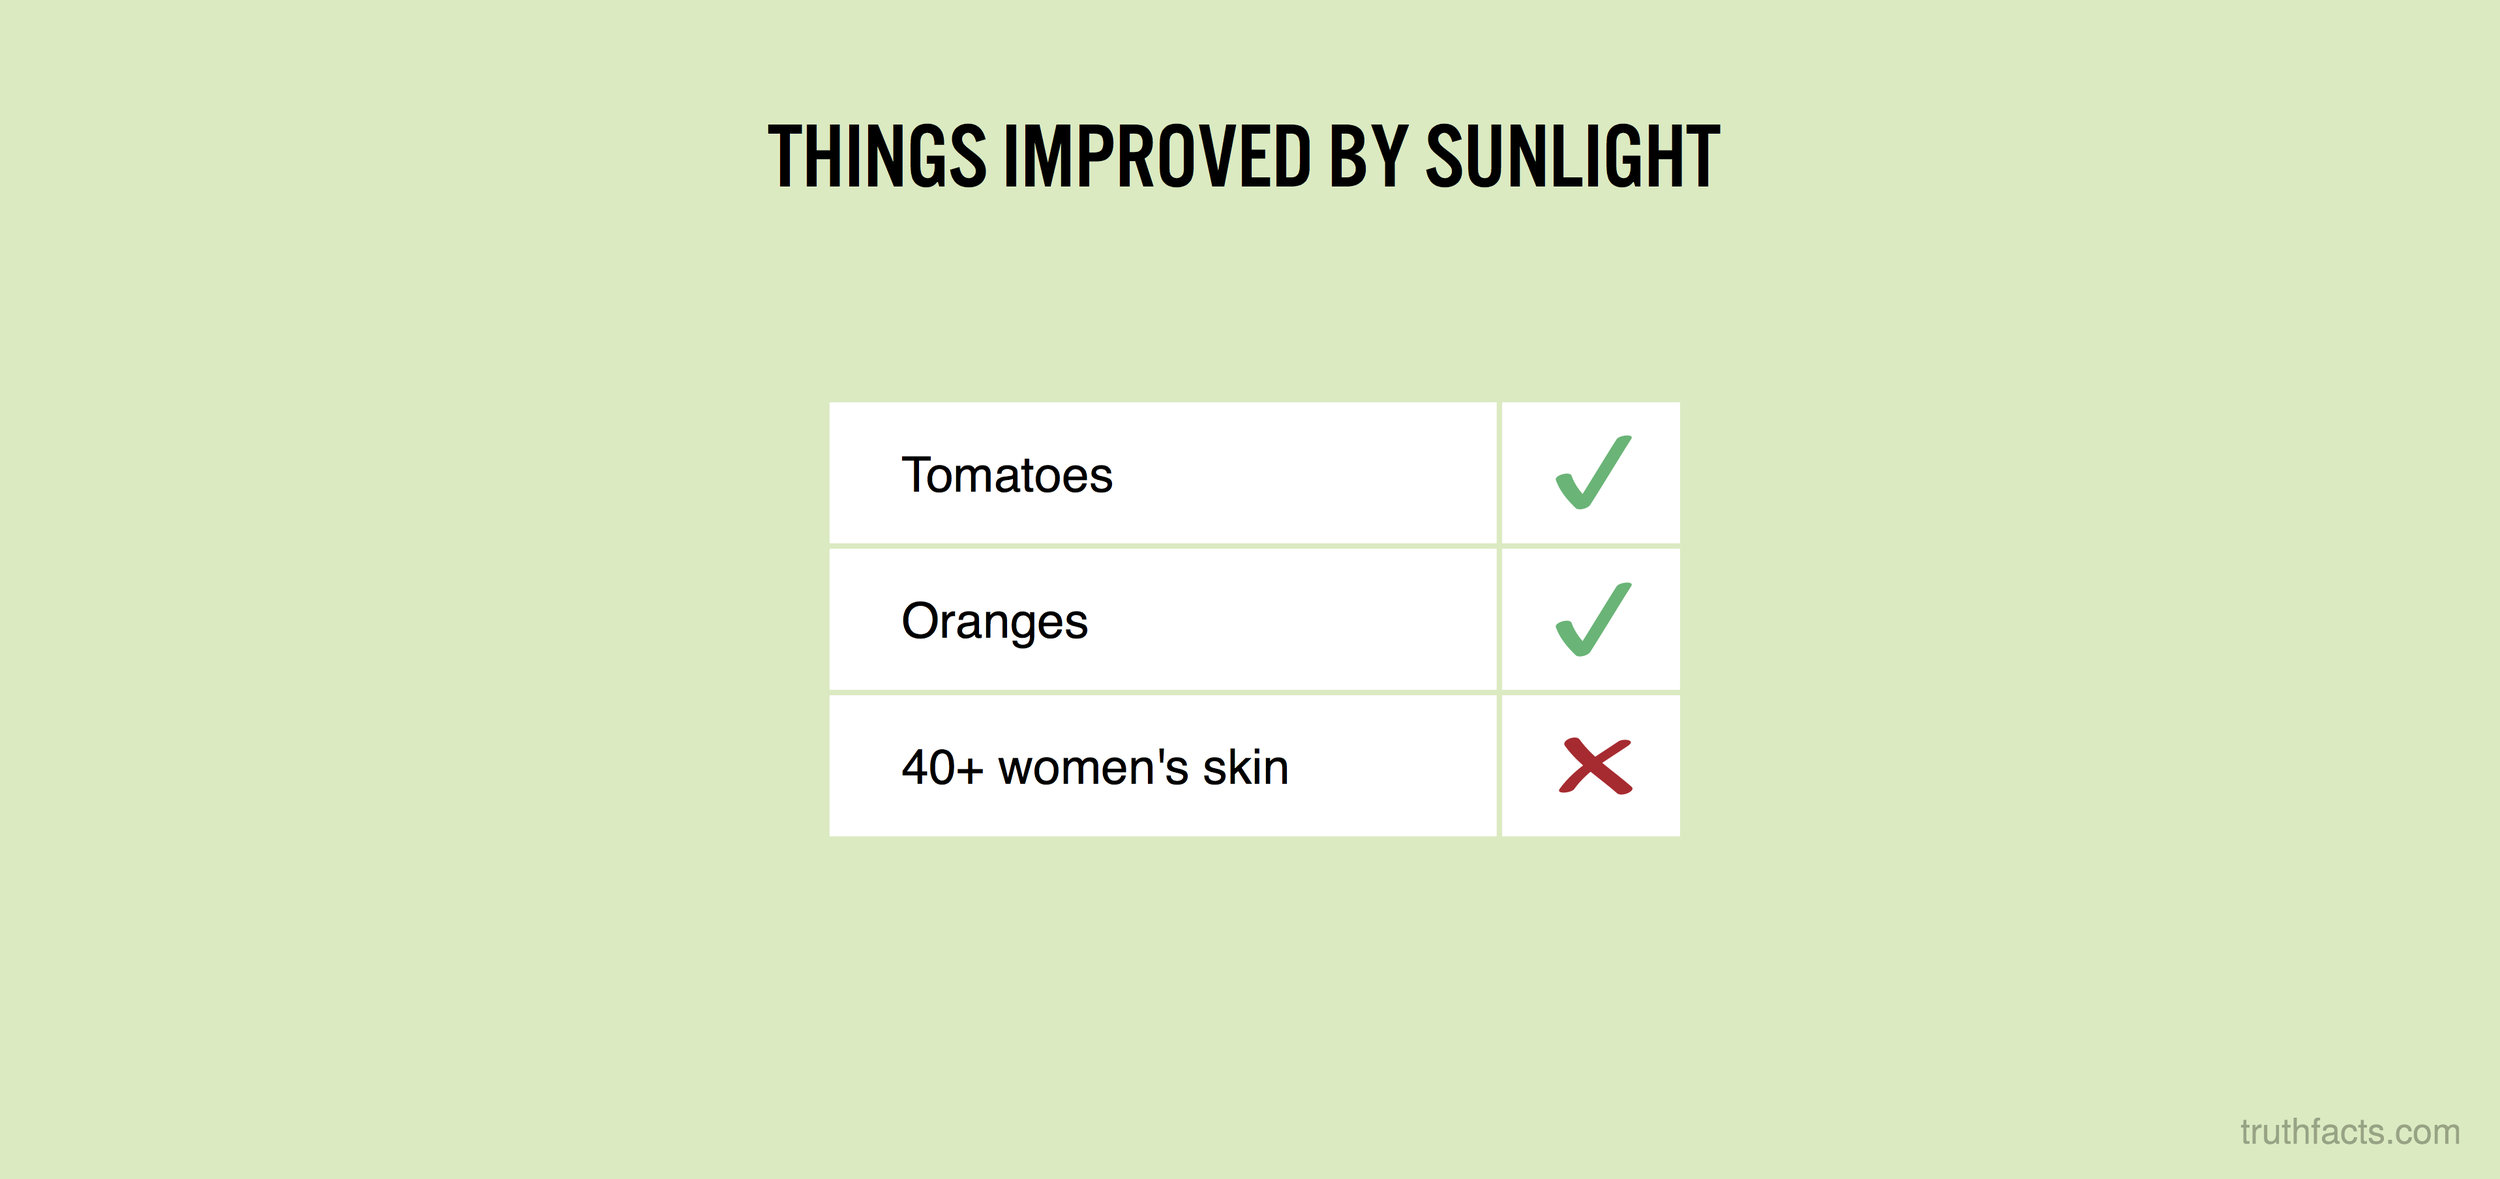 Things improved by sunlight